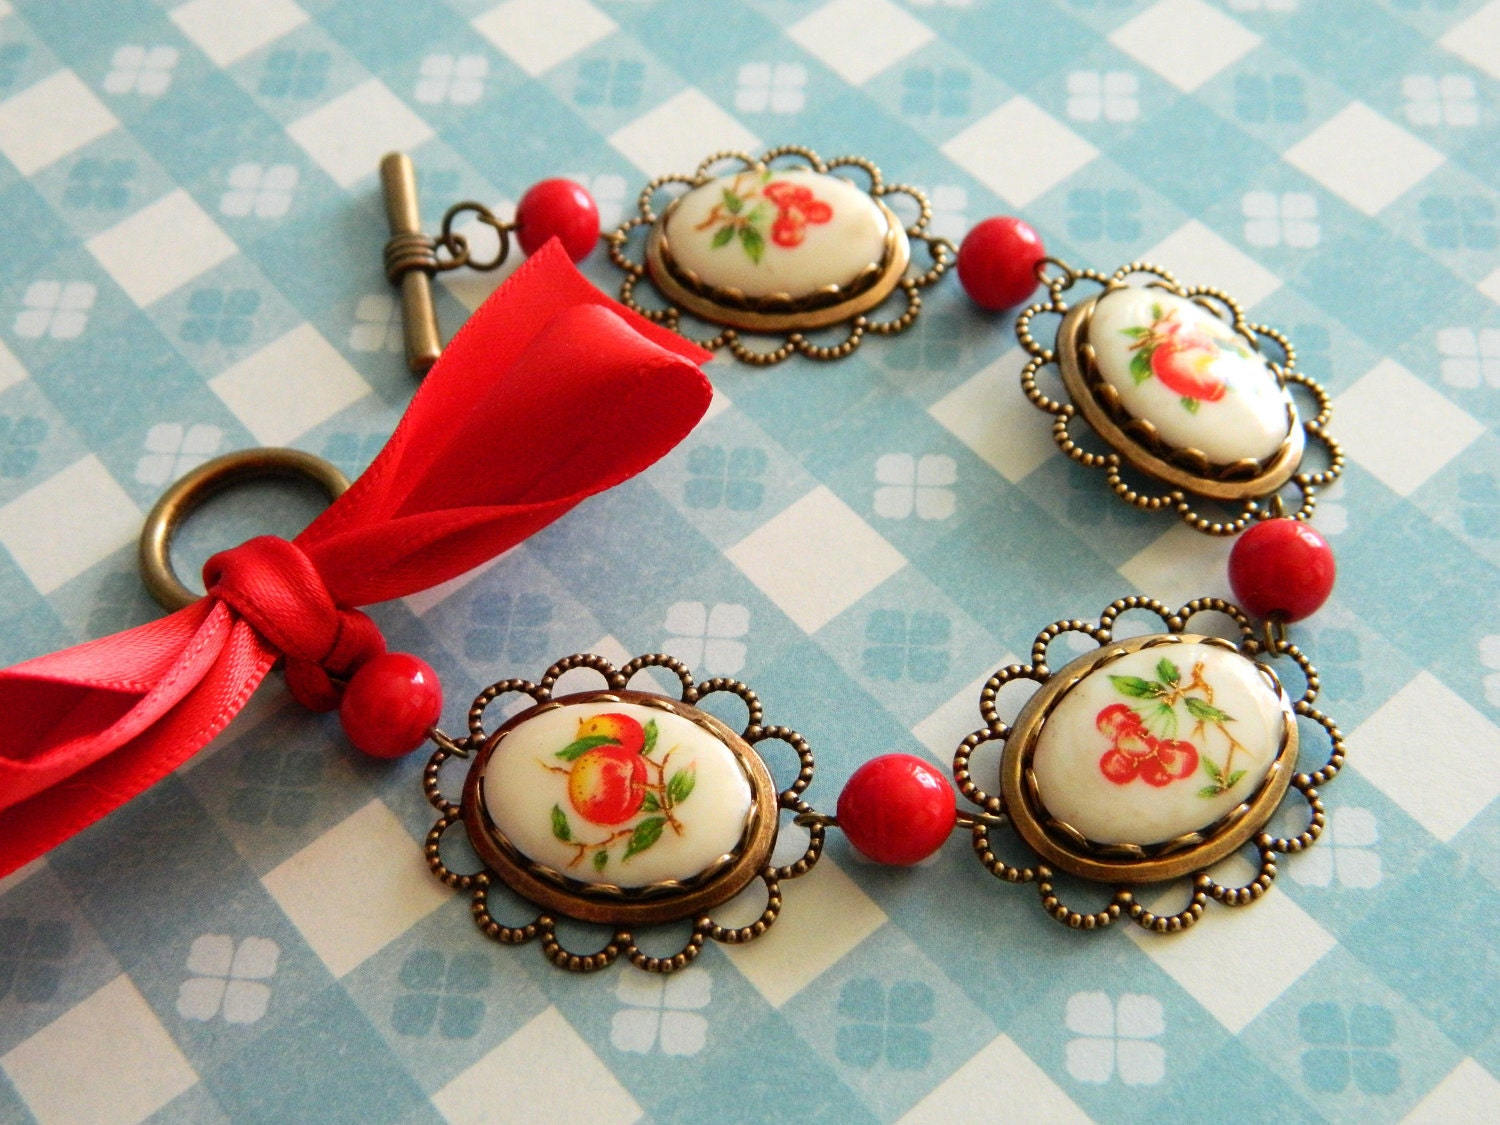 Bracelet Vintage Retro Cherry Peach Apple Red Ribbon & Lace Border - Betty's Fruit Basket